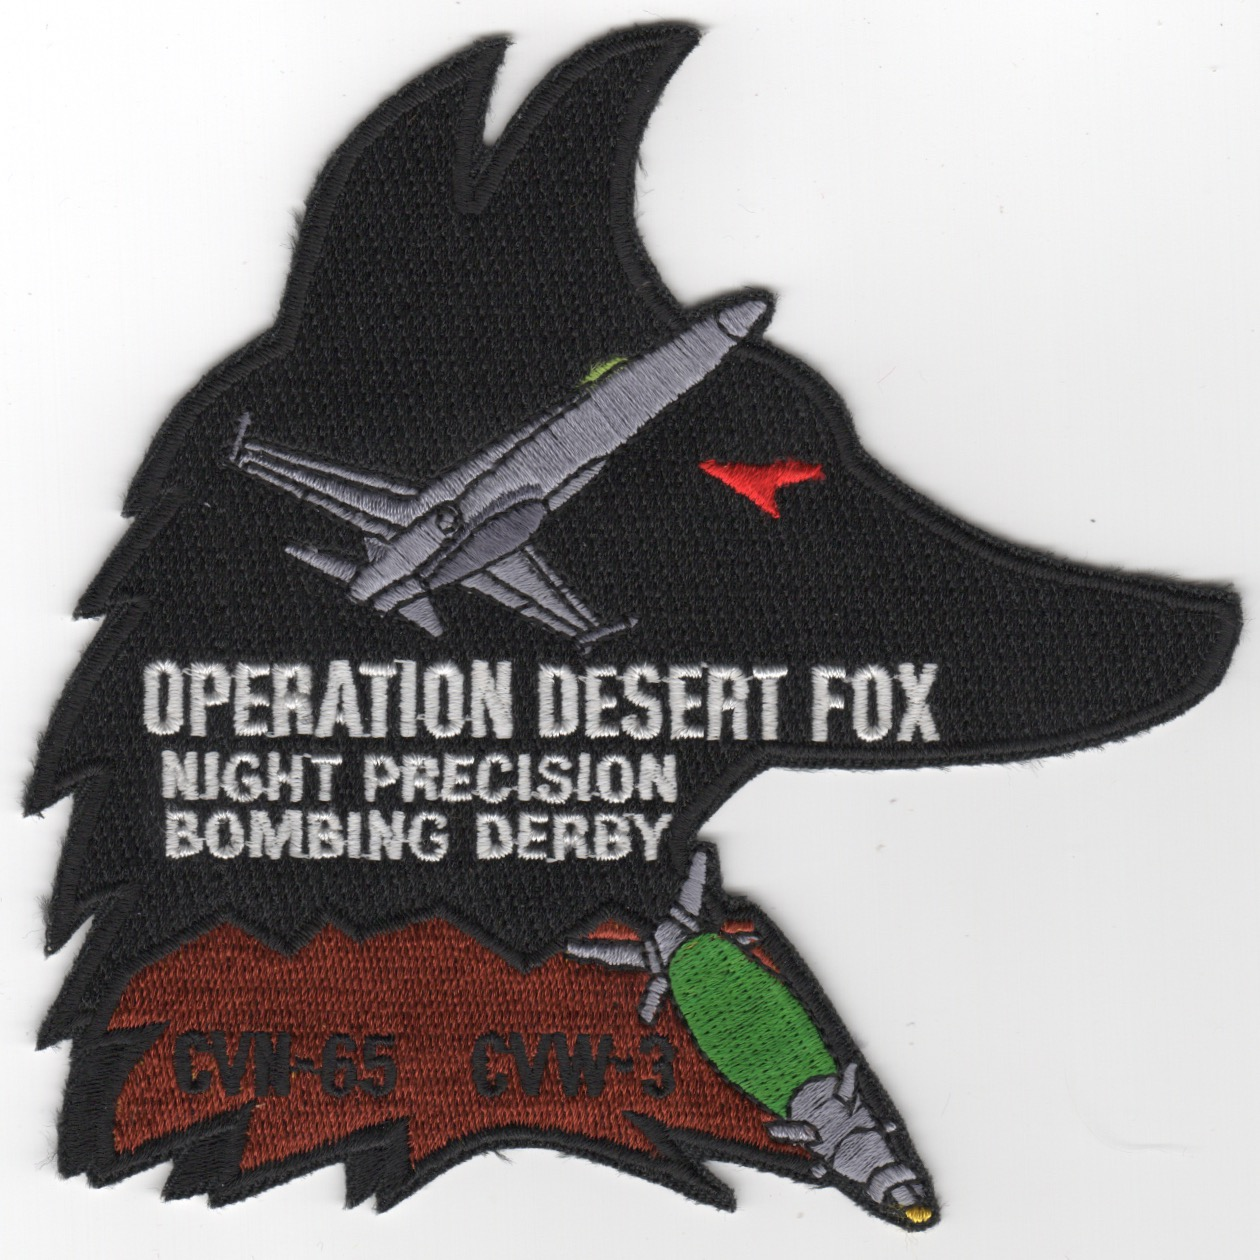 434) CVN-65 1998 'Op DESERT FOX' Cruise Patch